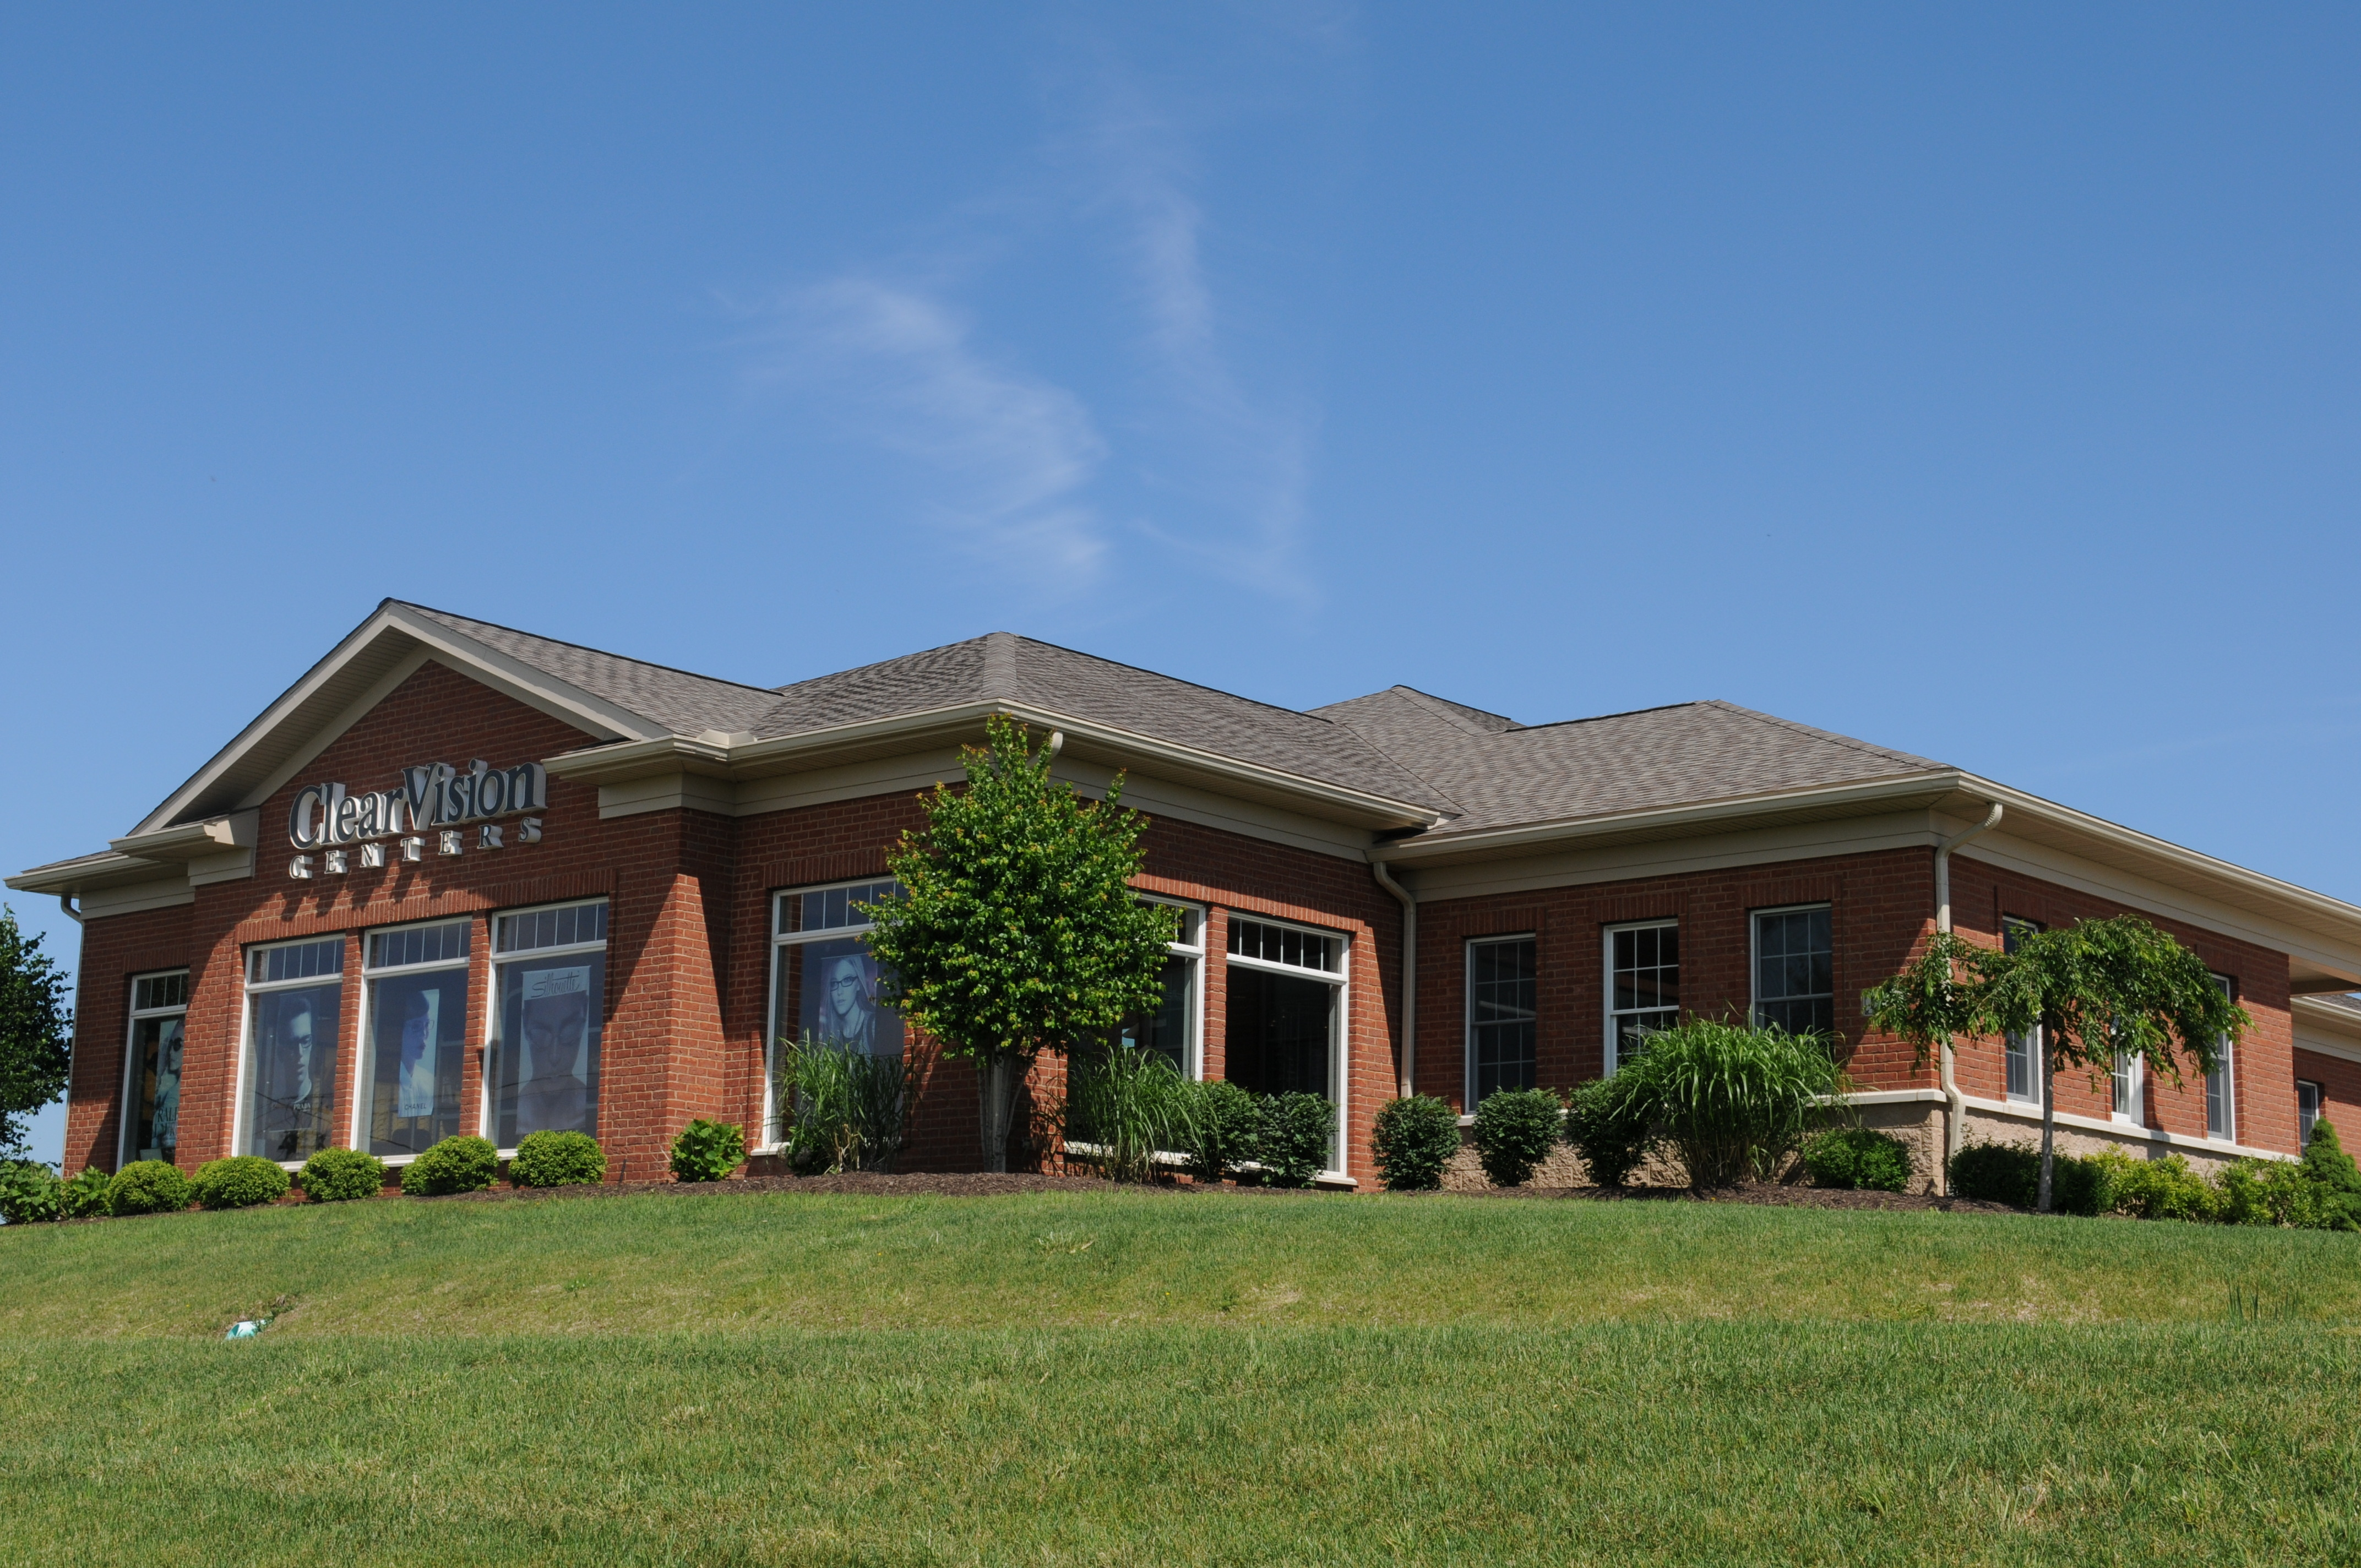 ClearVision Centers - Streetsboro, OH - ClearVision Centers